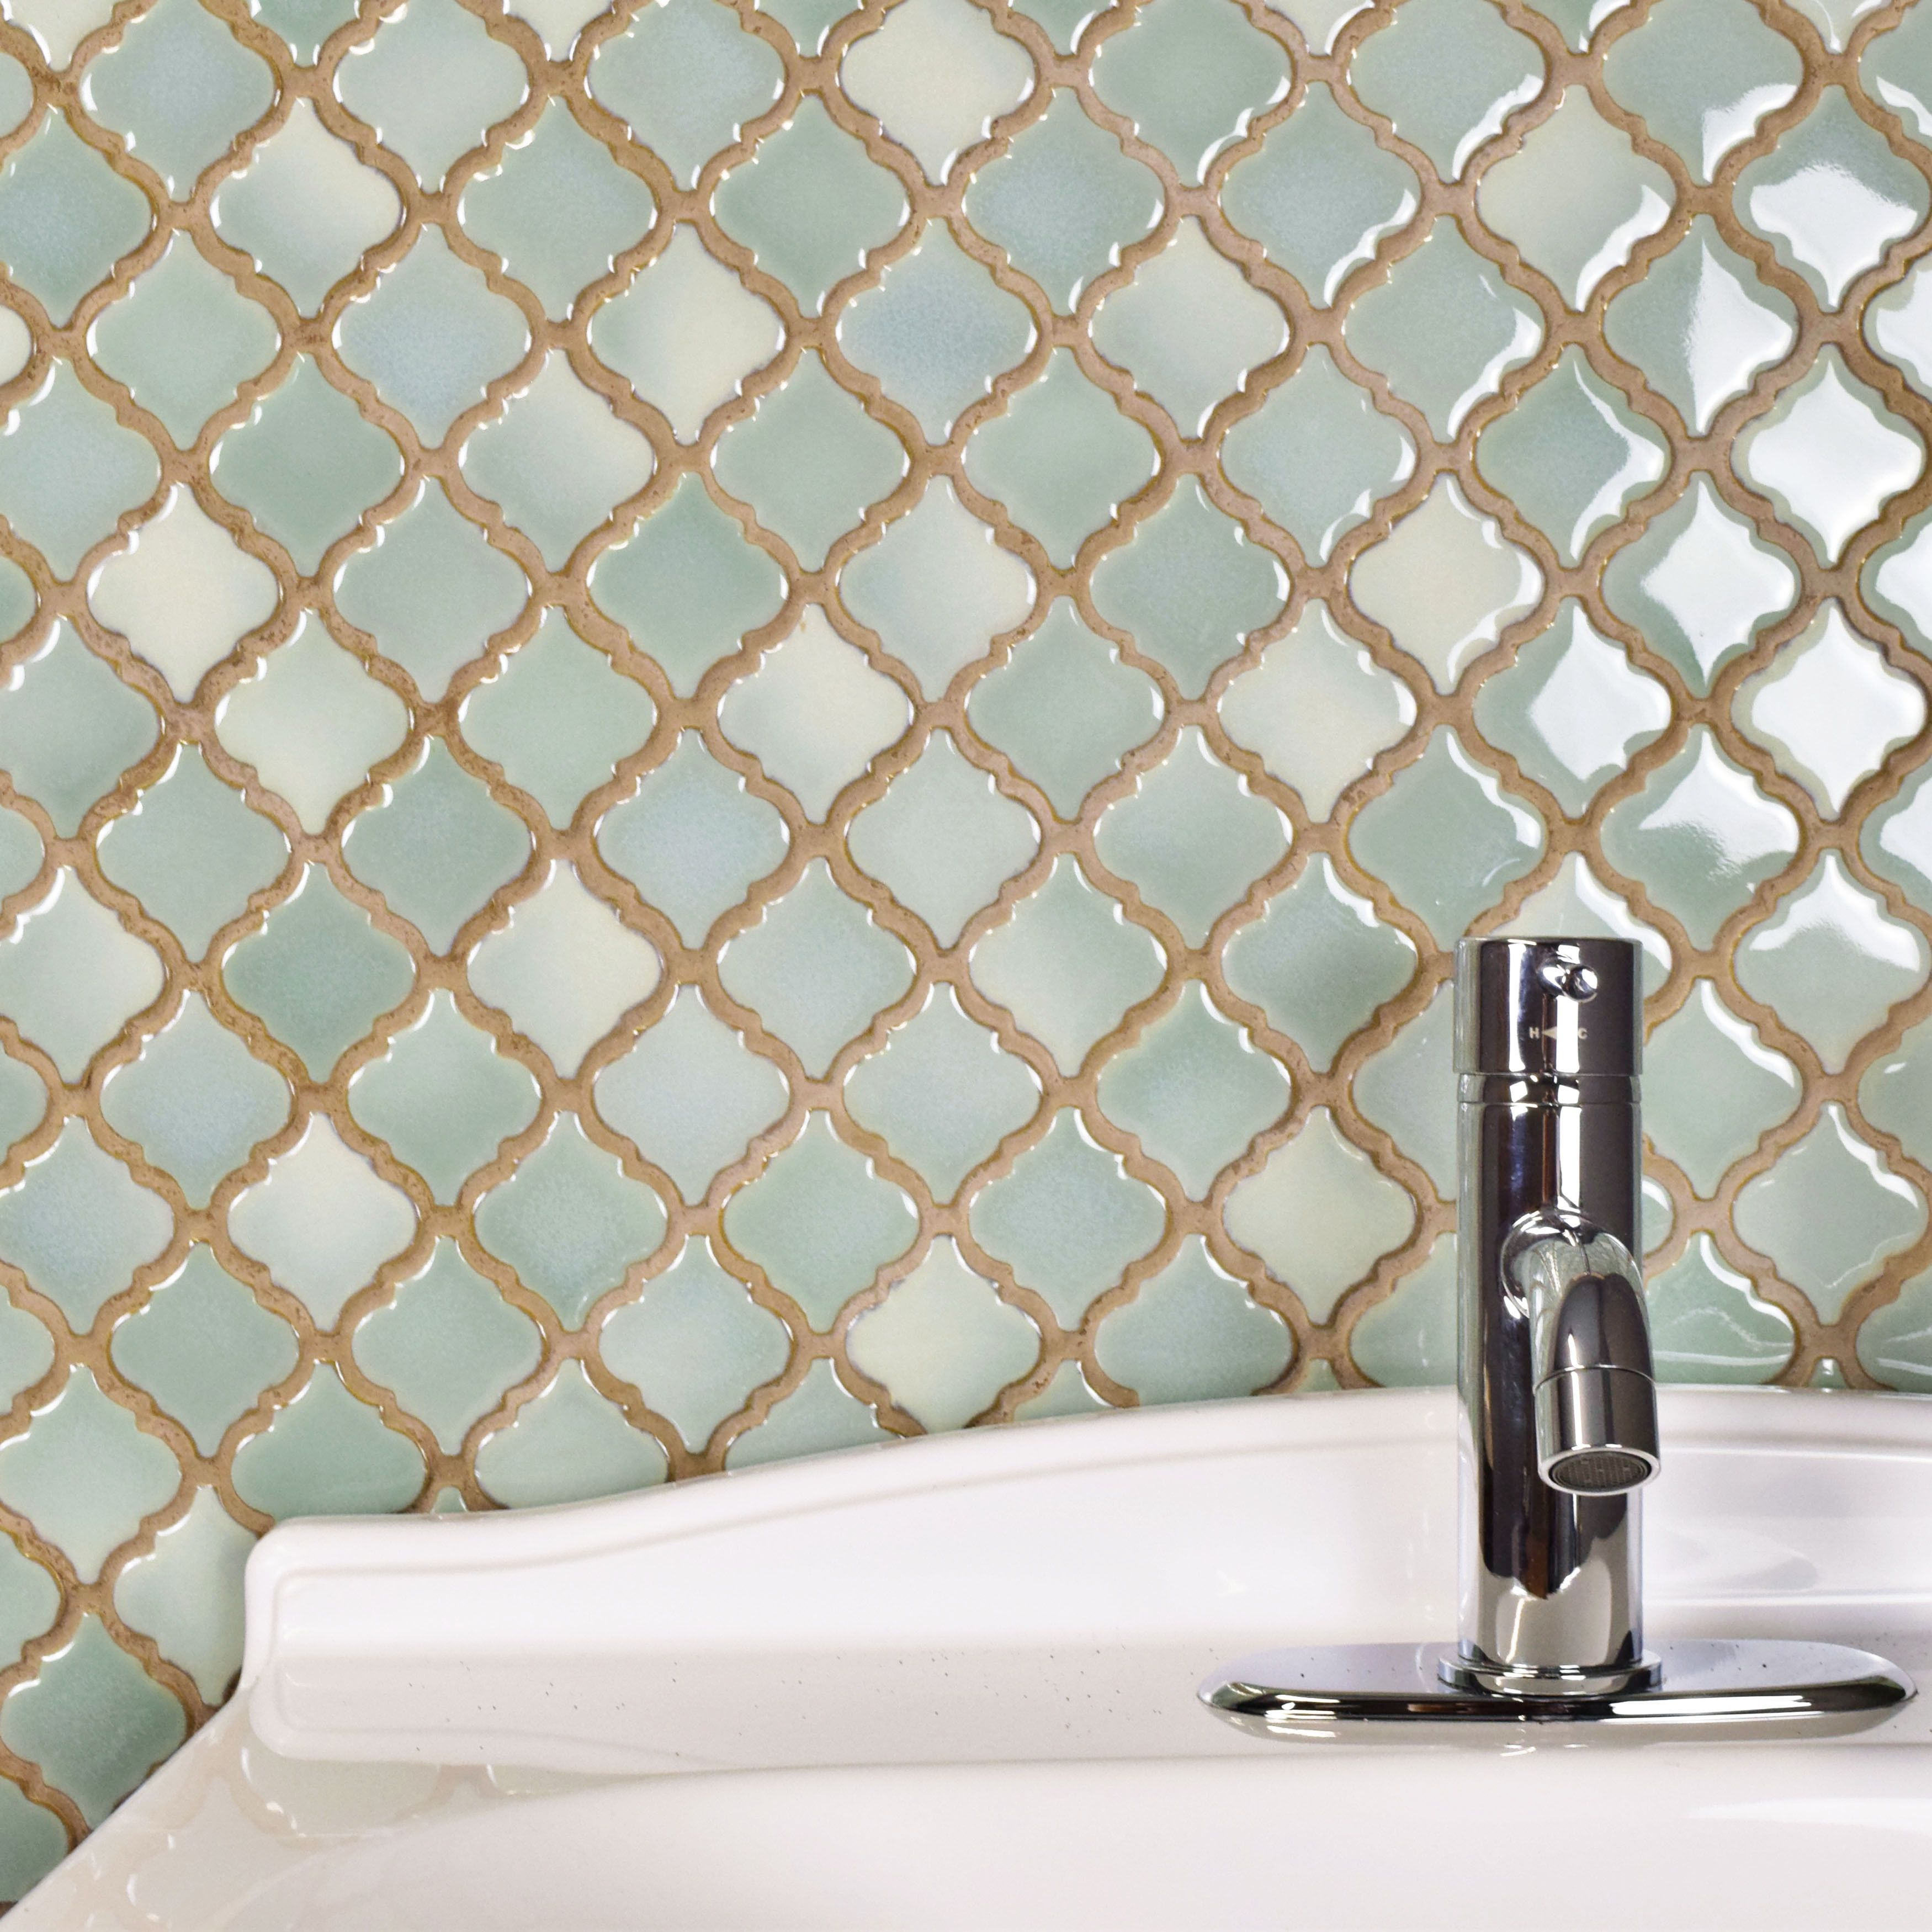 Backsplash tiles protect your kitchen and bathroom walls with